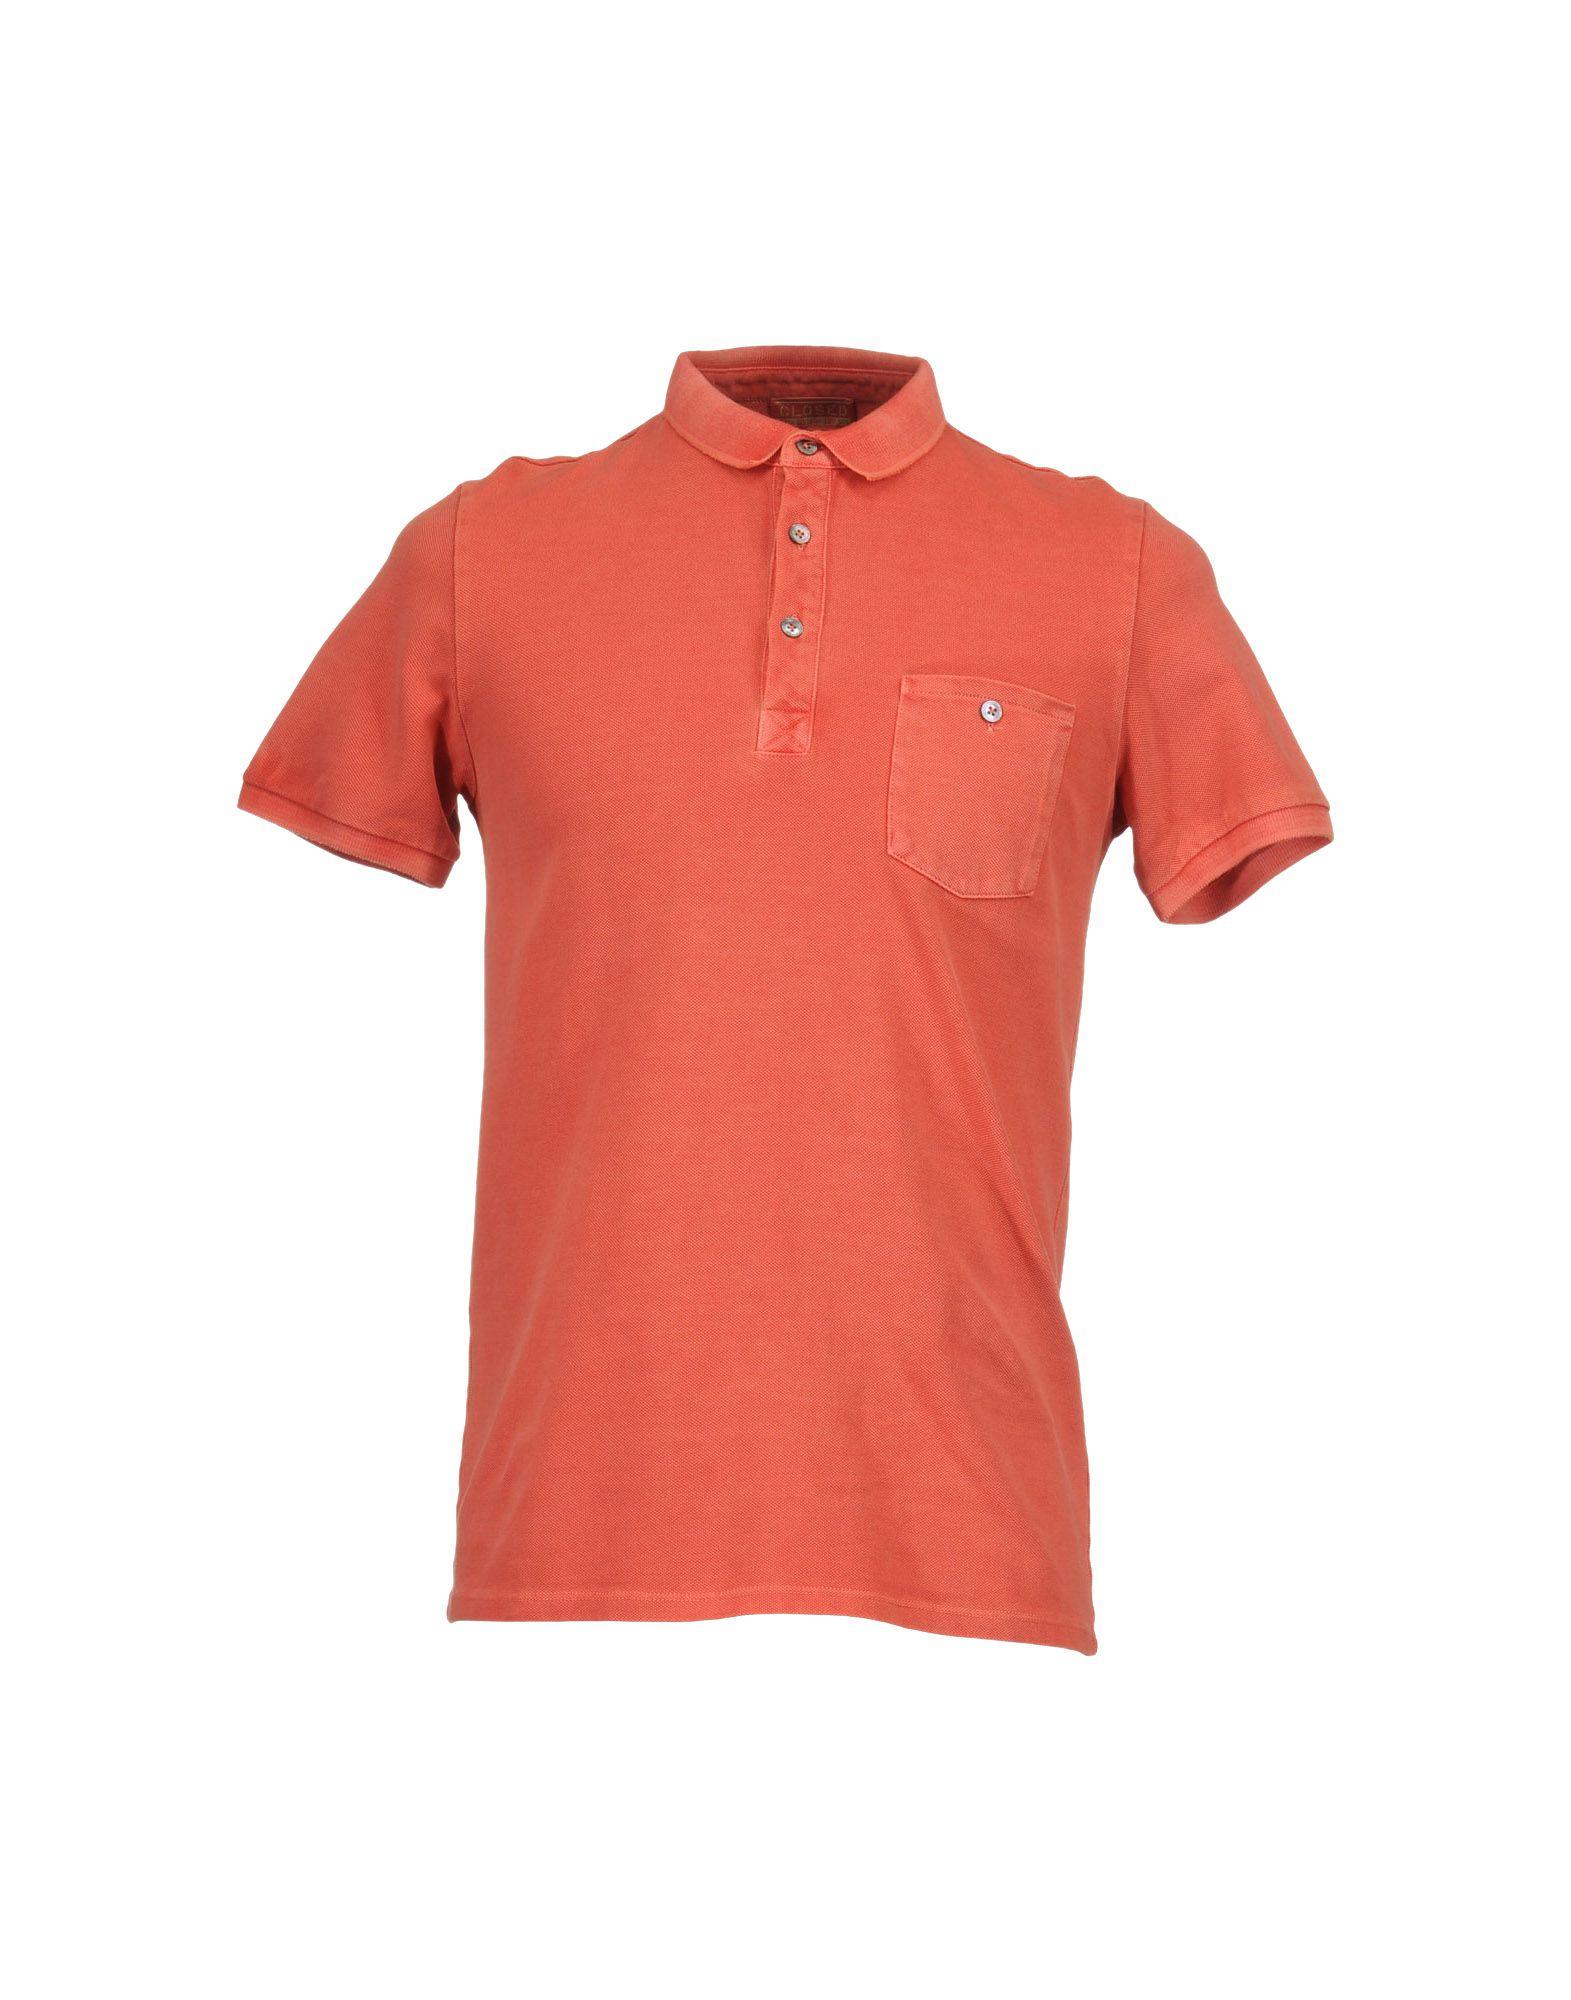 Closed Polo Shirts In Orange For Men Salmon Pink Lyst